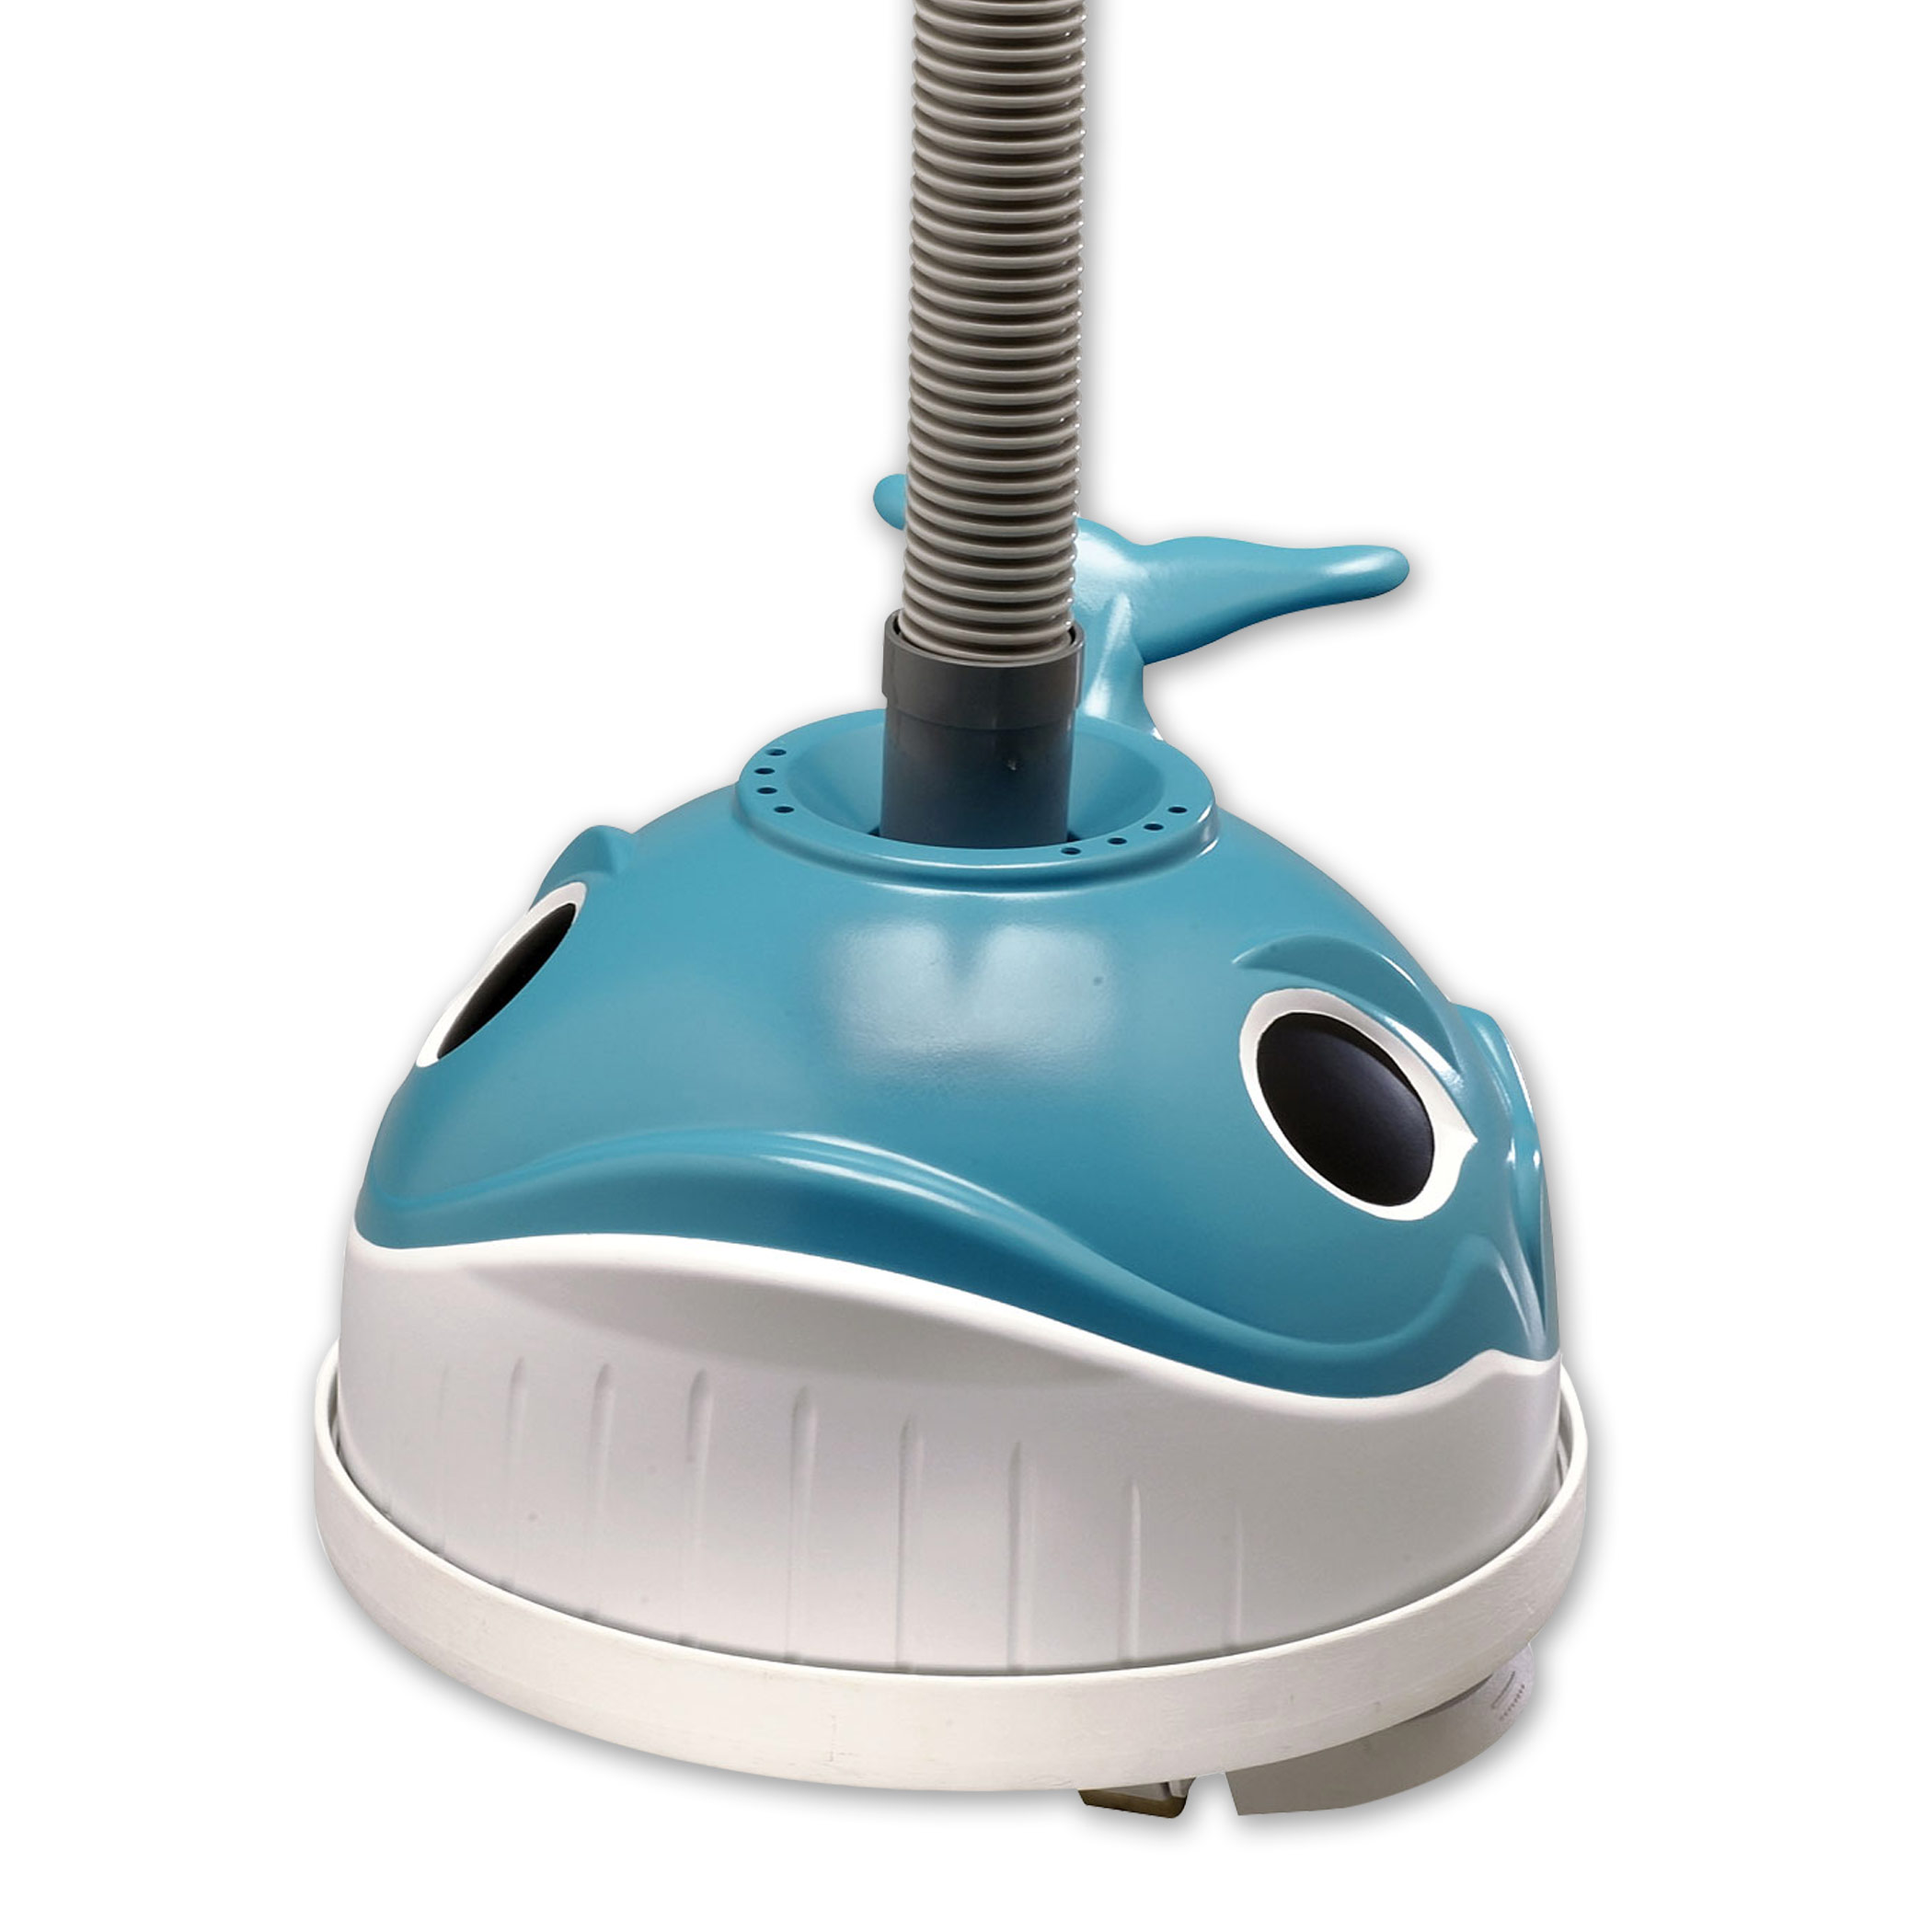 Hayward 900 Wanda the Whale Automatic Above Ground Pool Cleaner